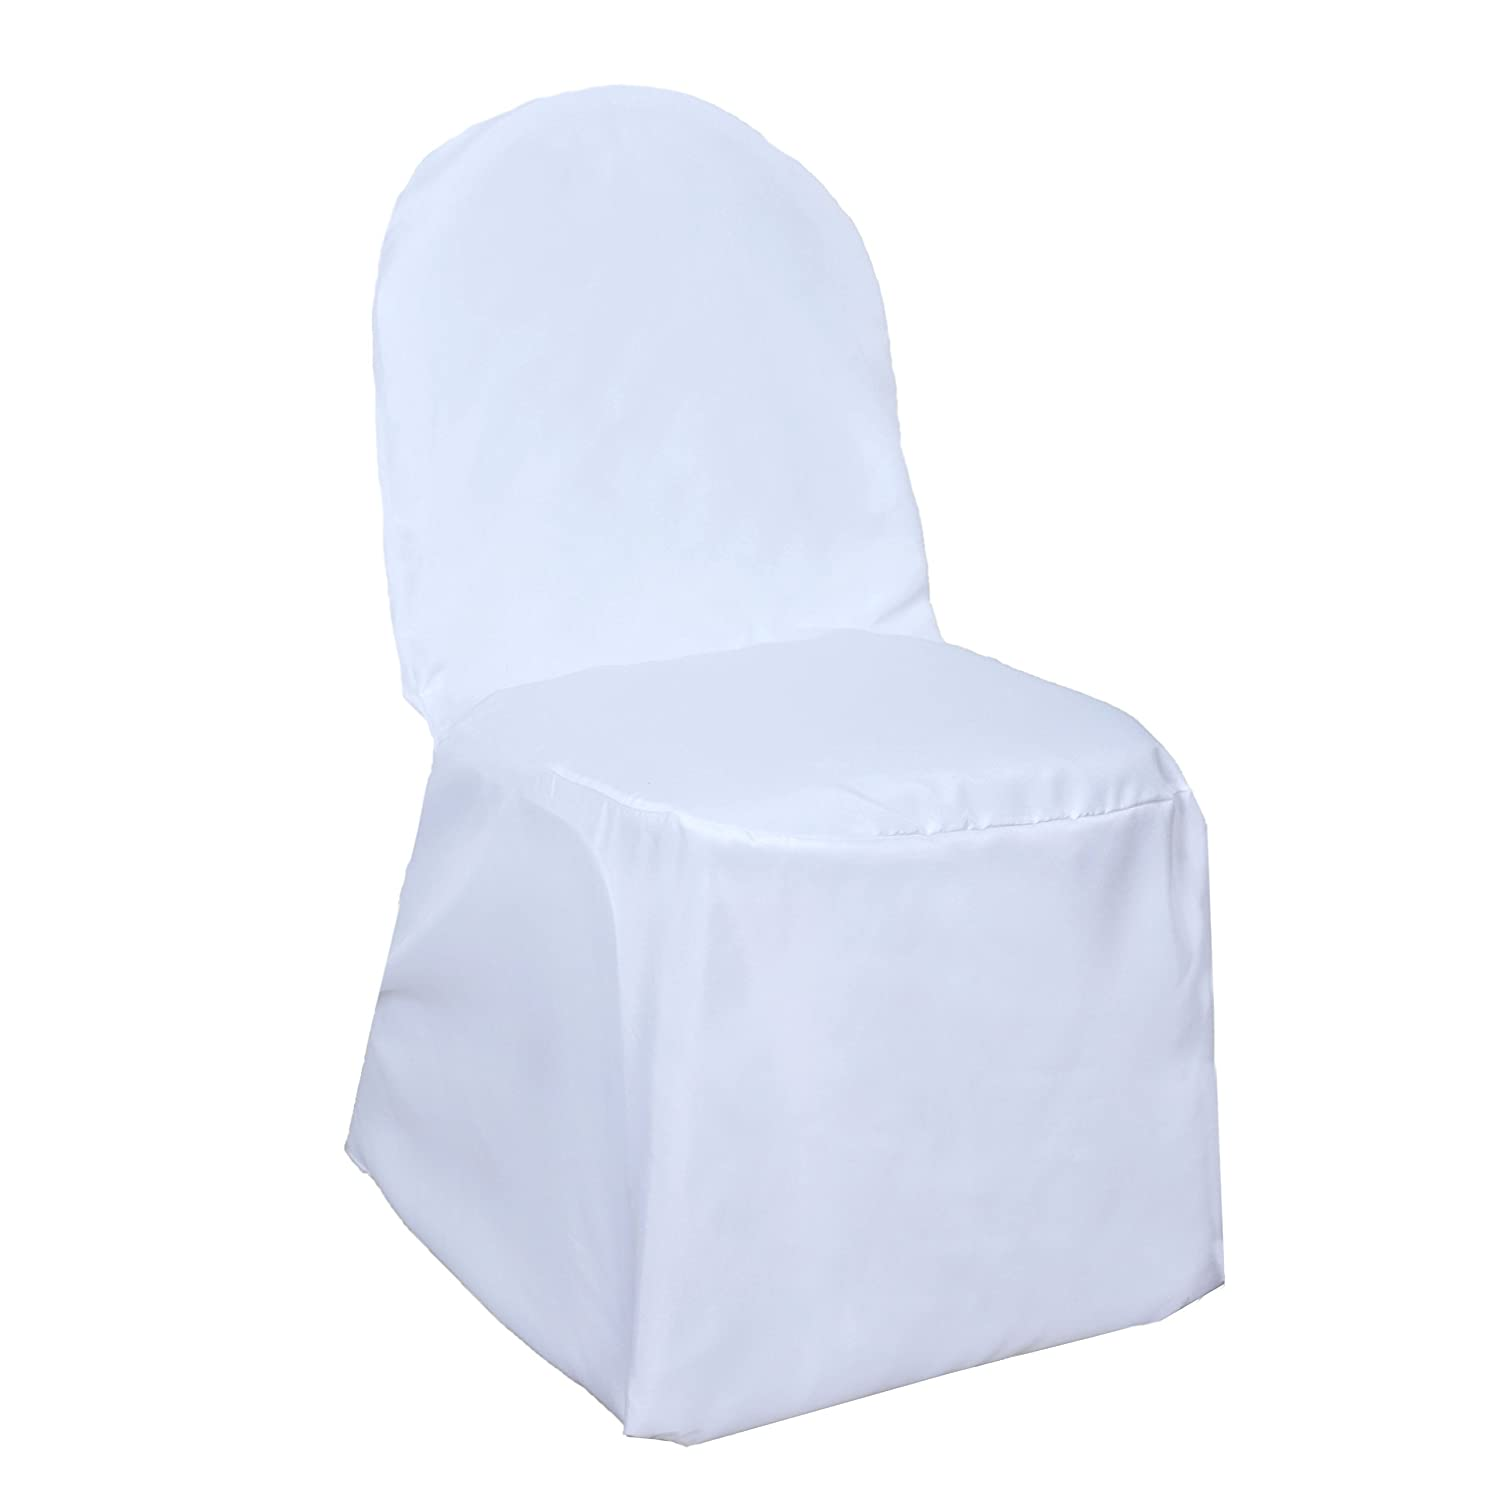 Marvelous Amazon Com Balsacircle 12 Pcs White Polyester Banquet Chair Frankydiablos Diy Chair Ideas Frankydiabloscom